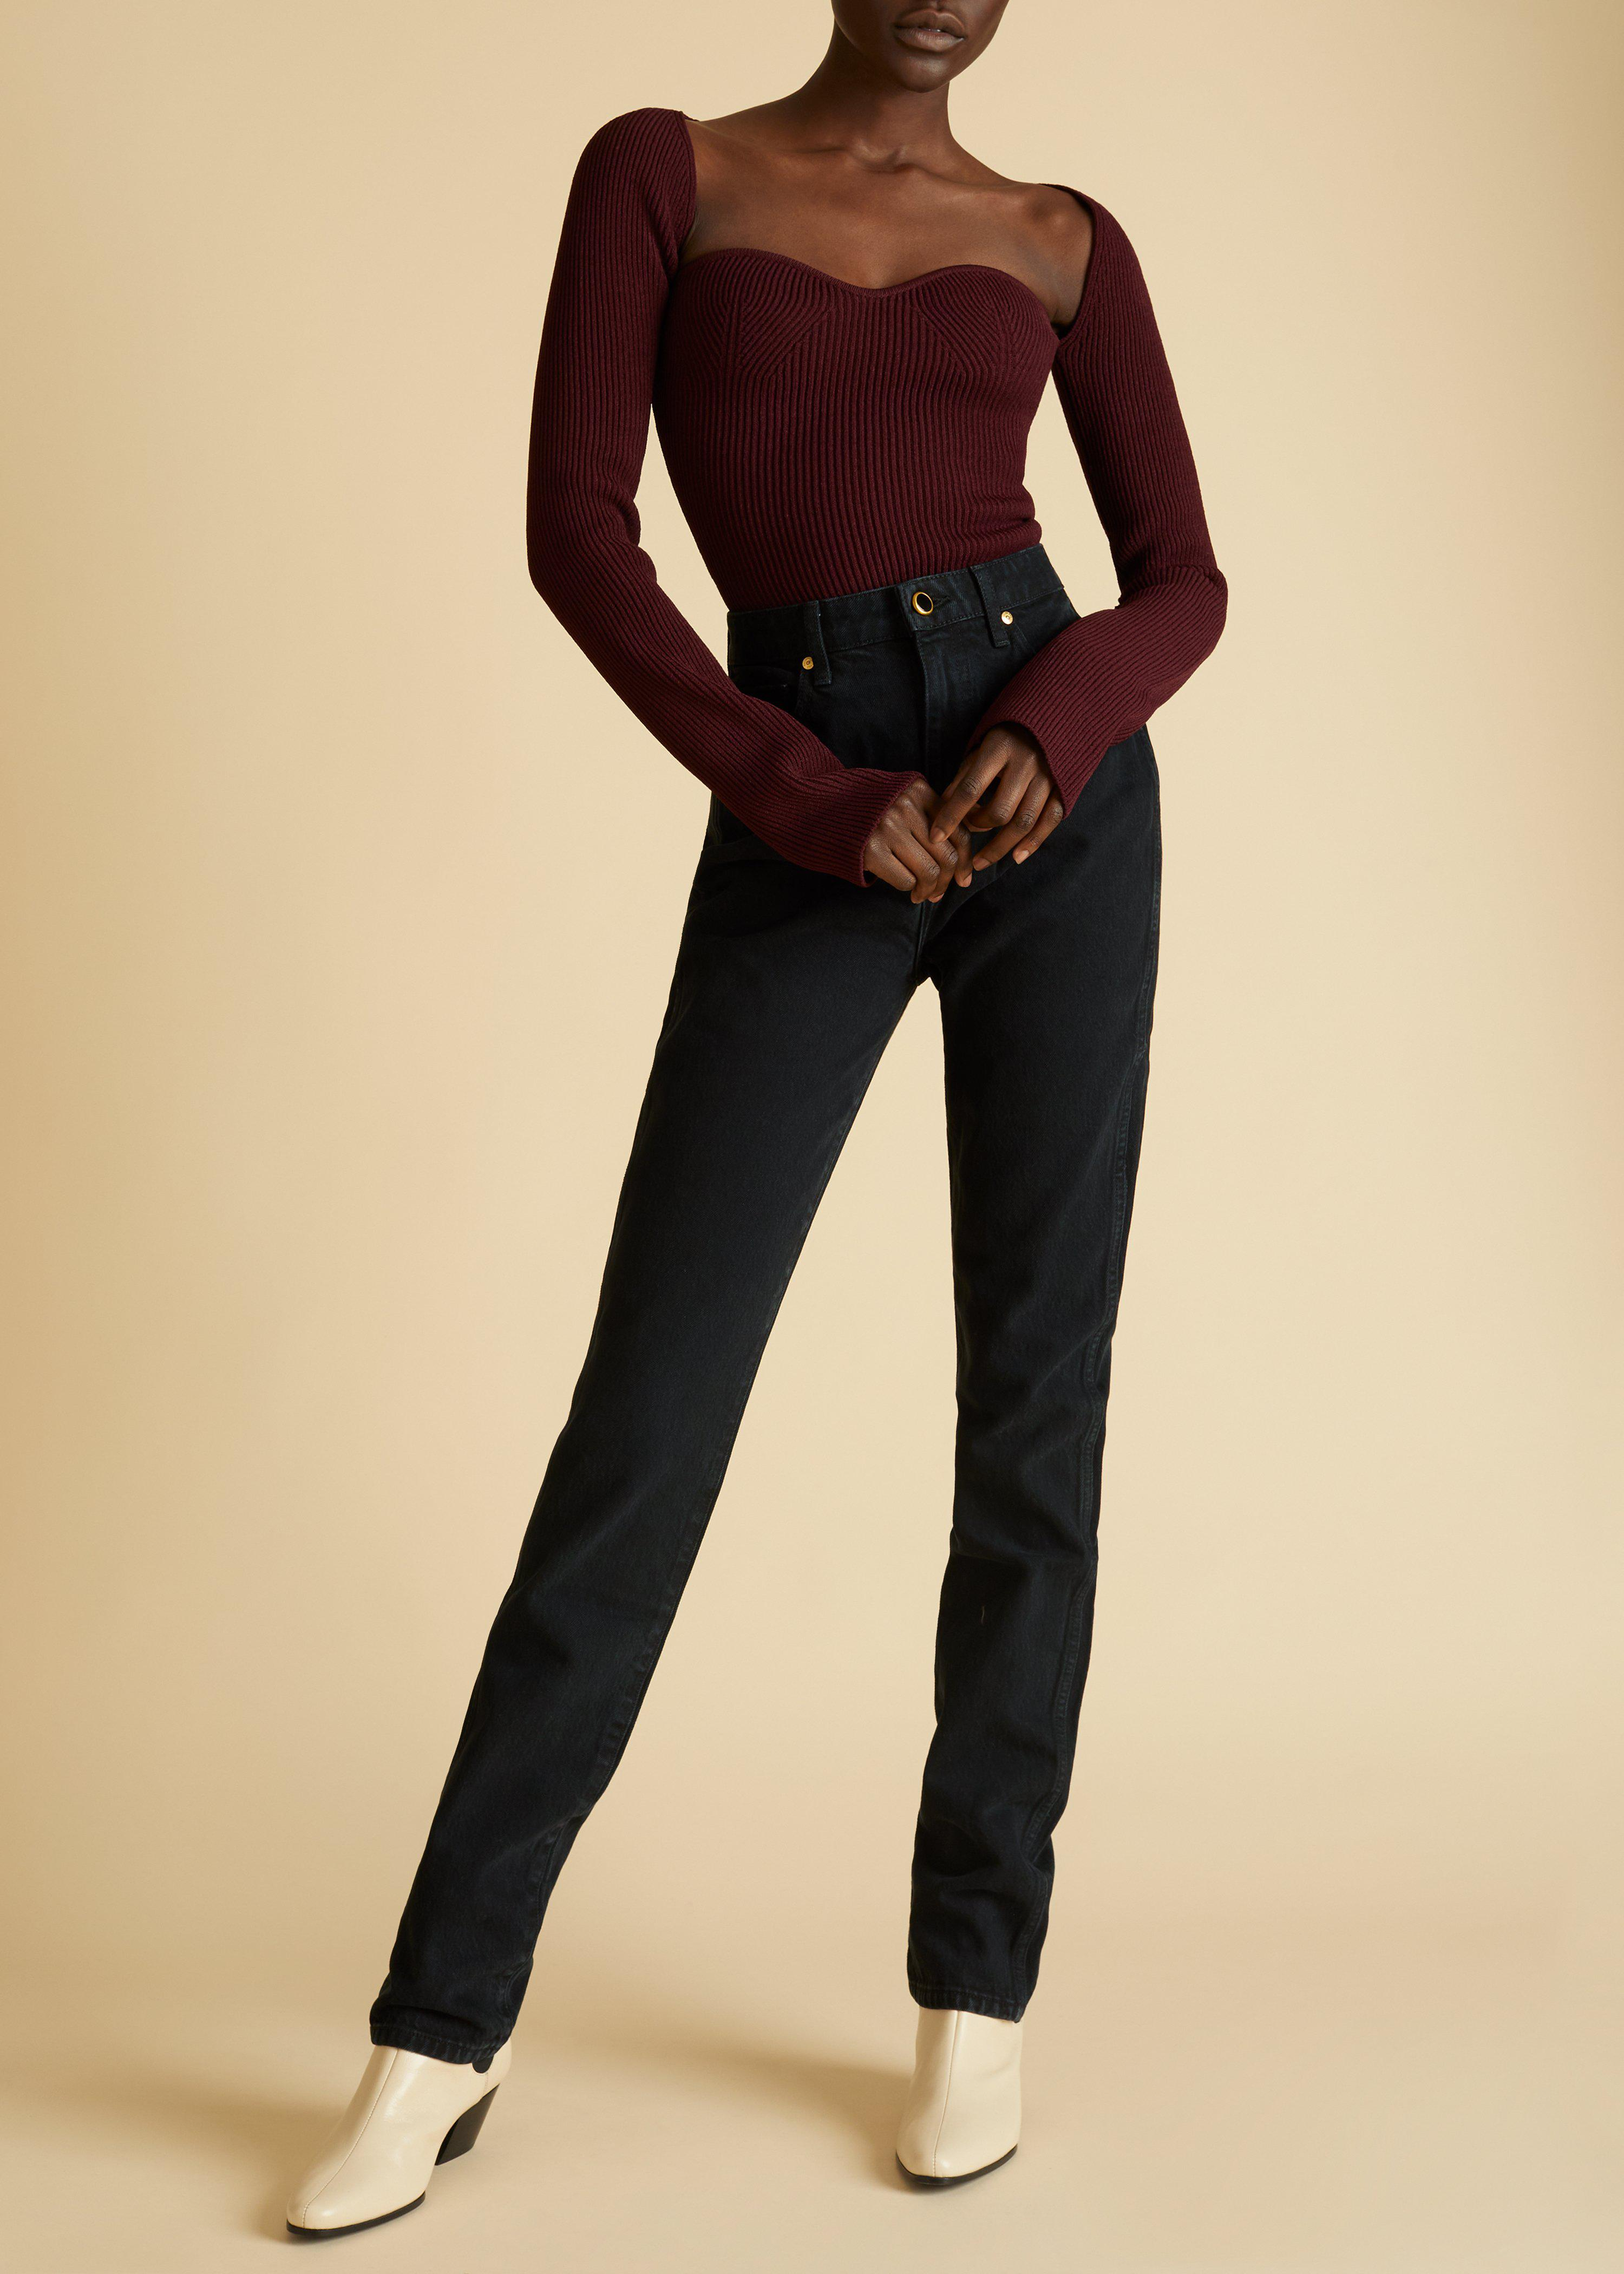 The Maddy Top in Oxblood 1